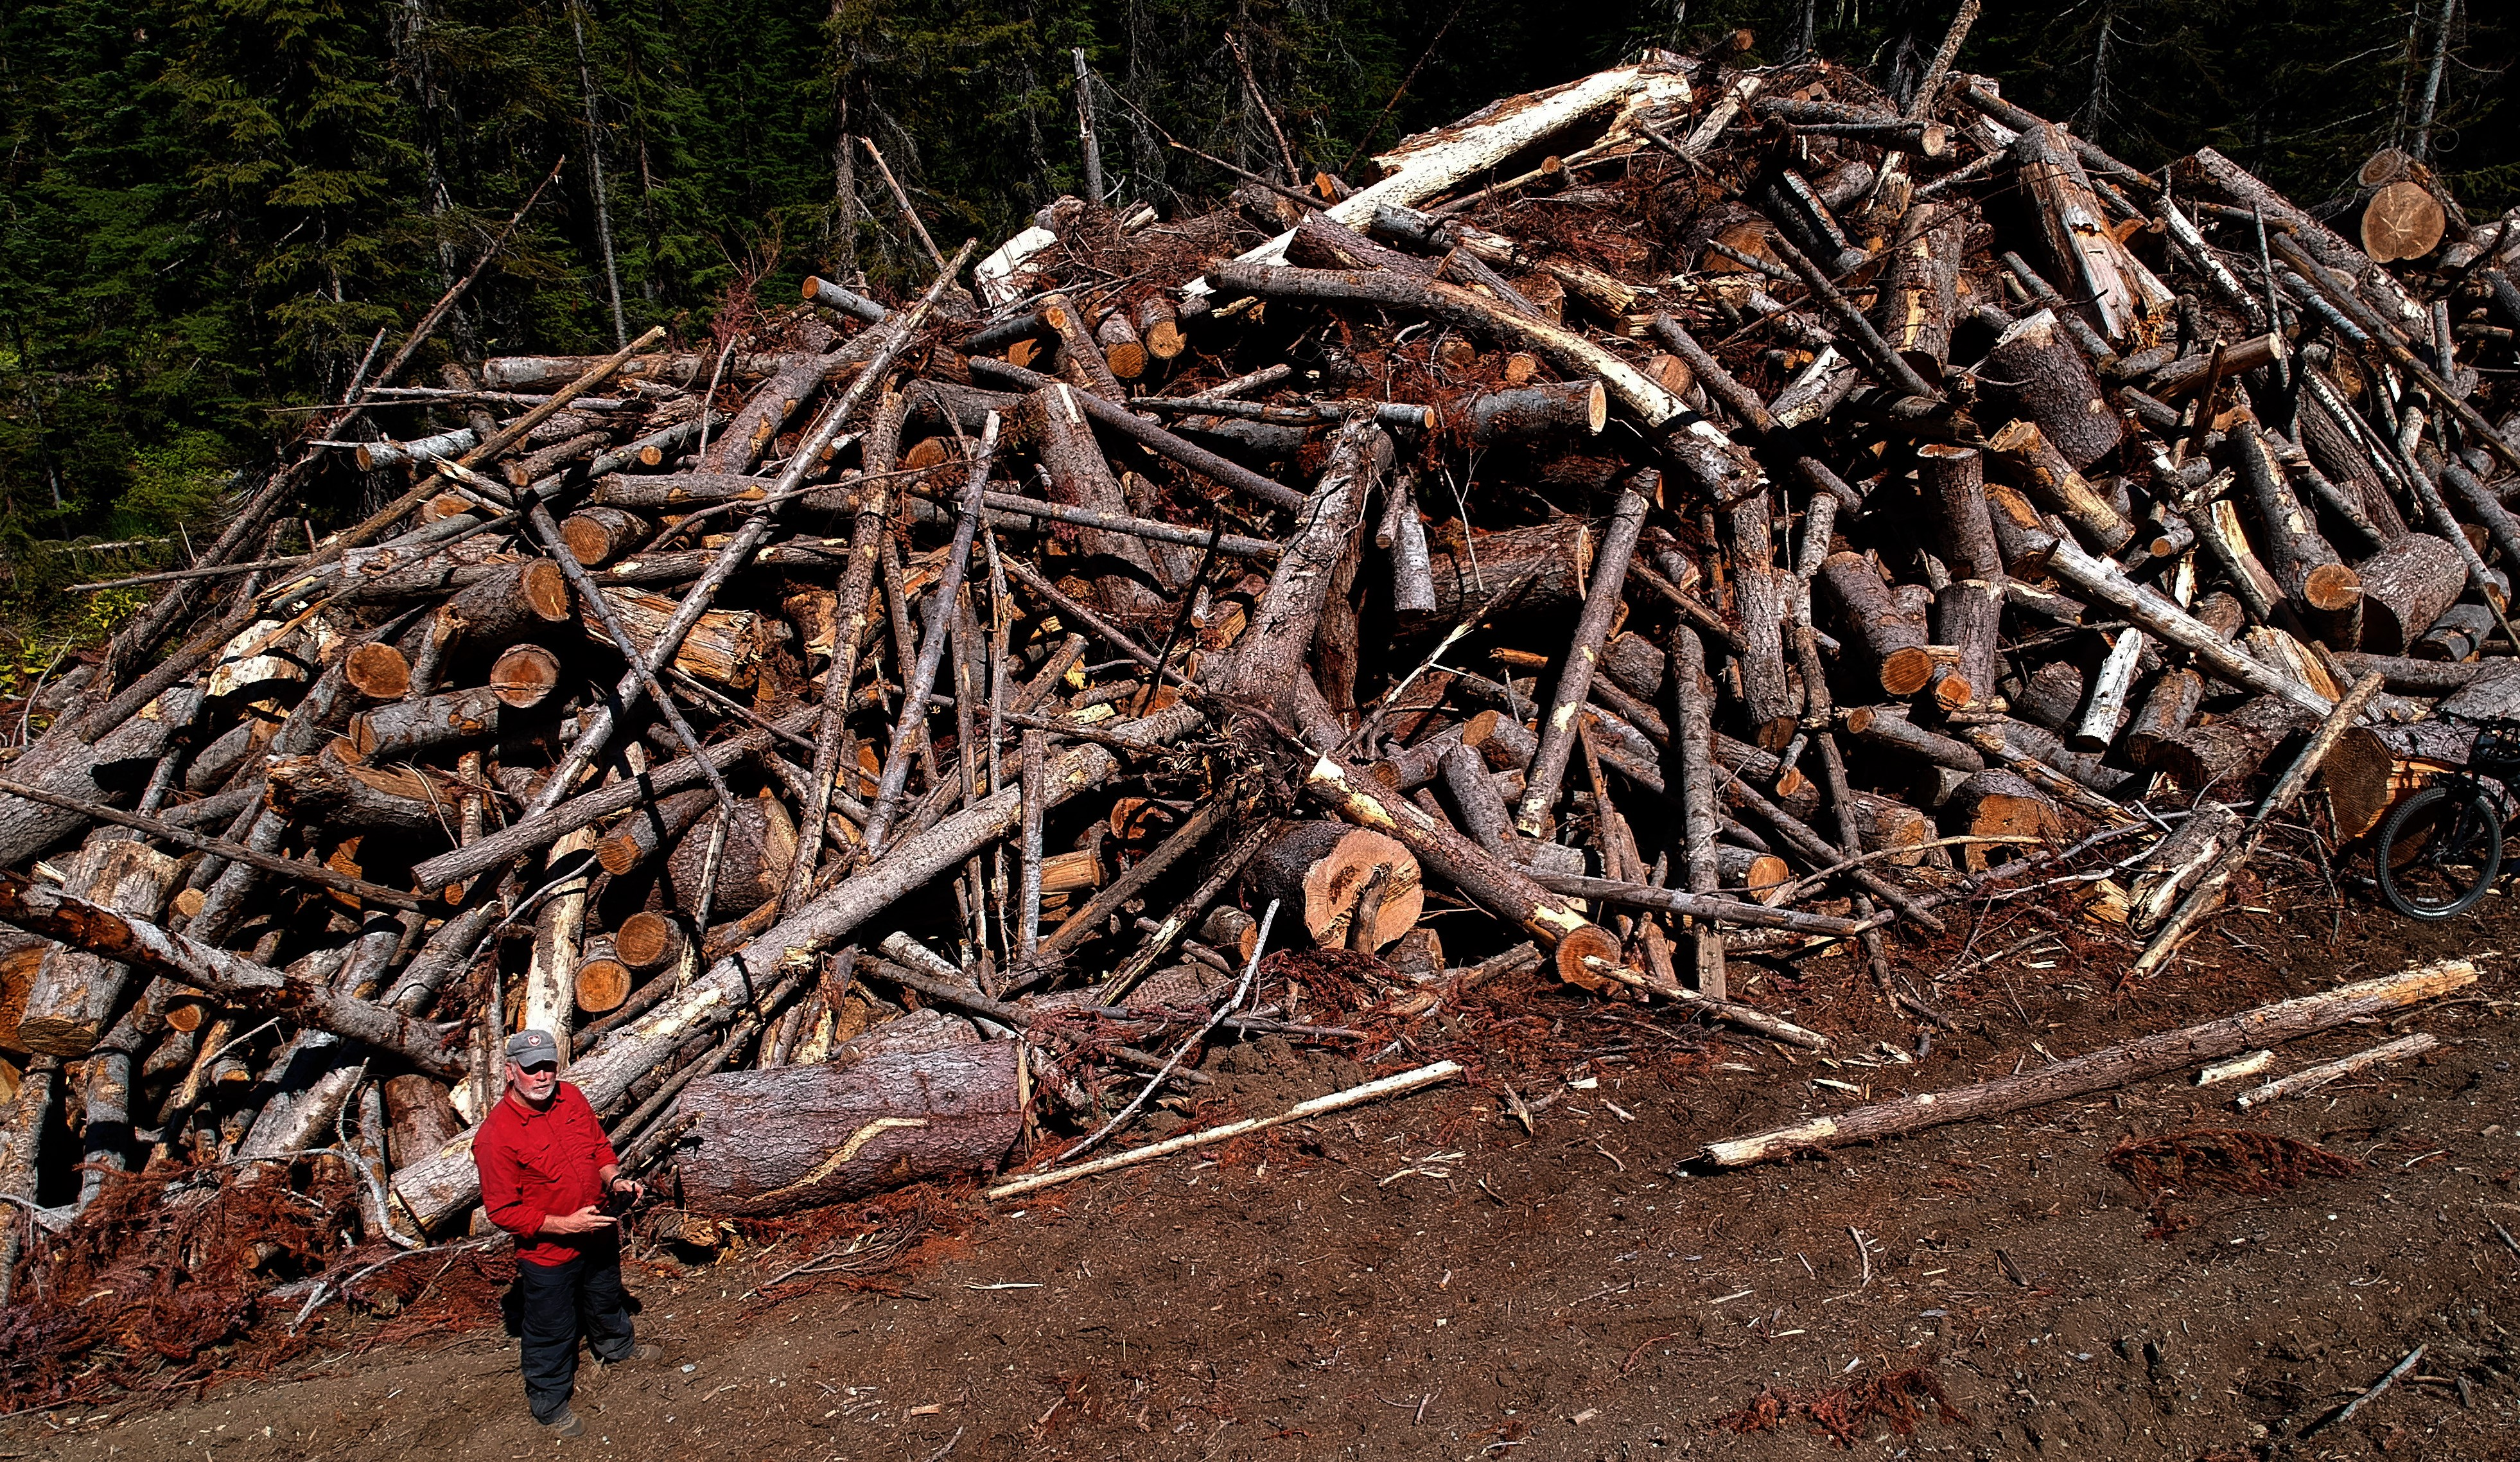 Logging waste pile in the Donut Hole - one of many